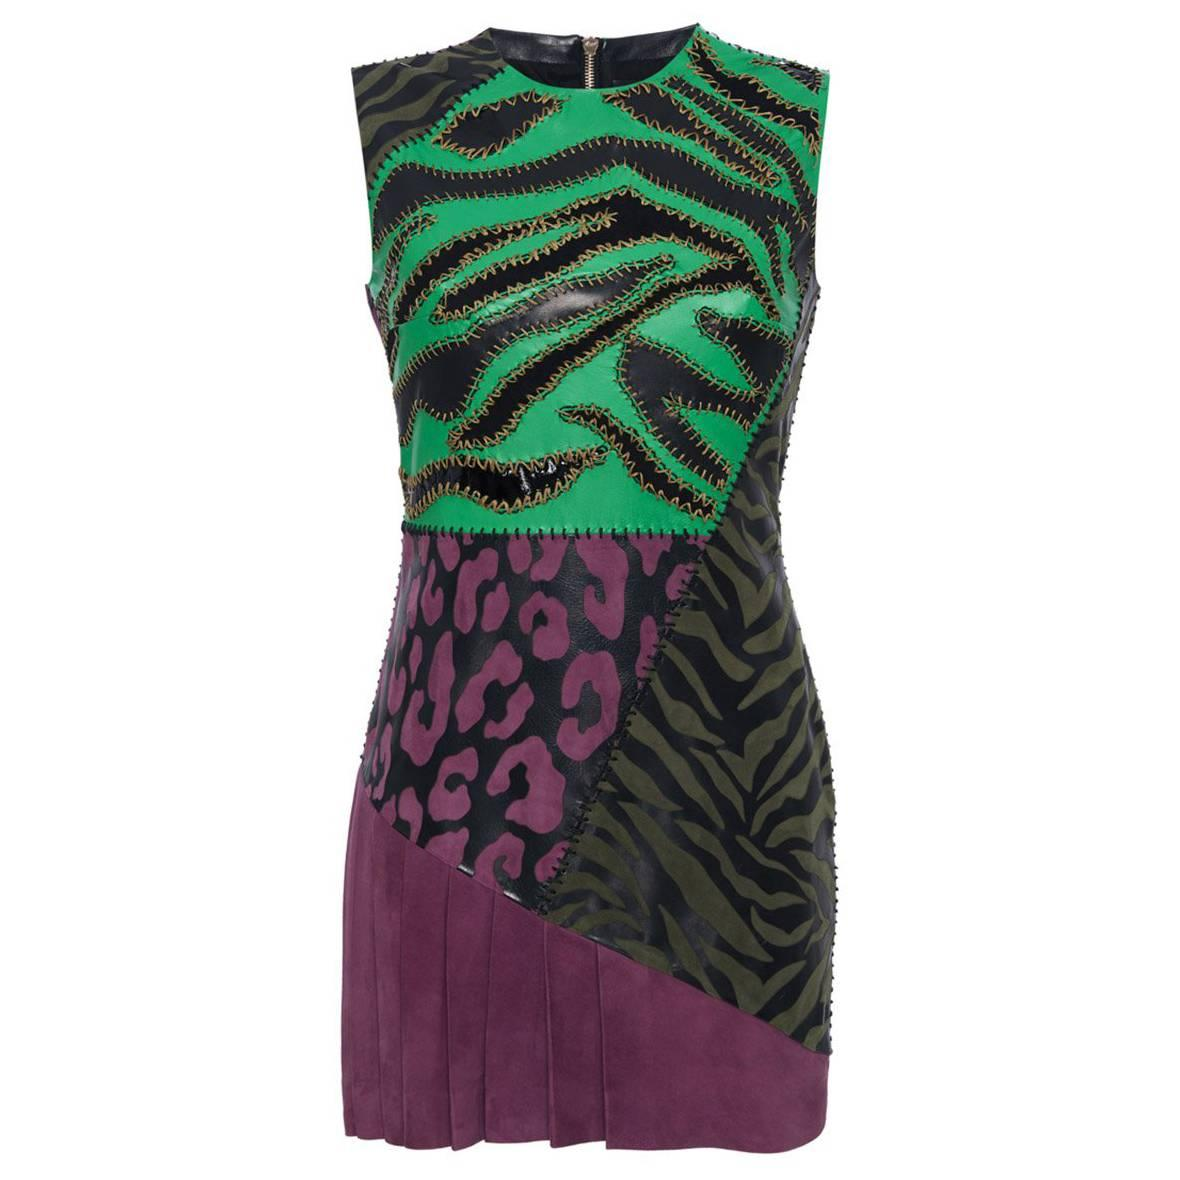 c3c9c139a6d Vintage Versace Evening Dresses and Gowns - 280 For Sale at 1stdibs